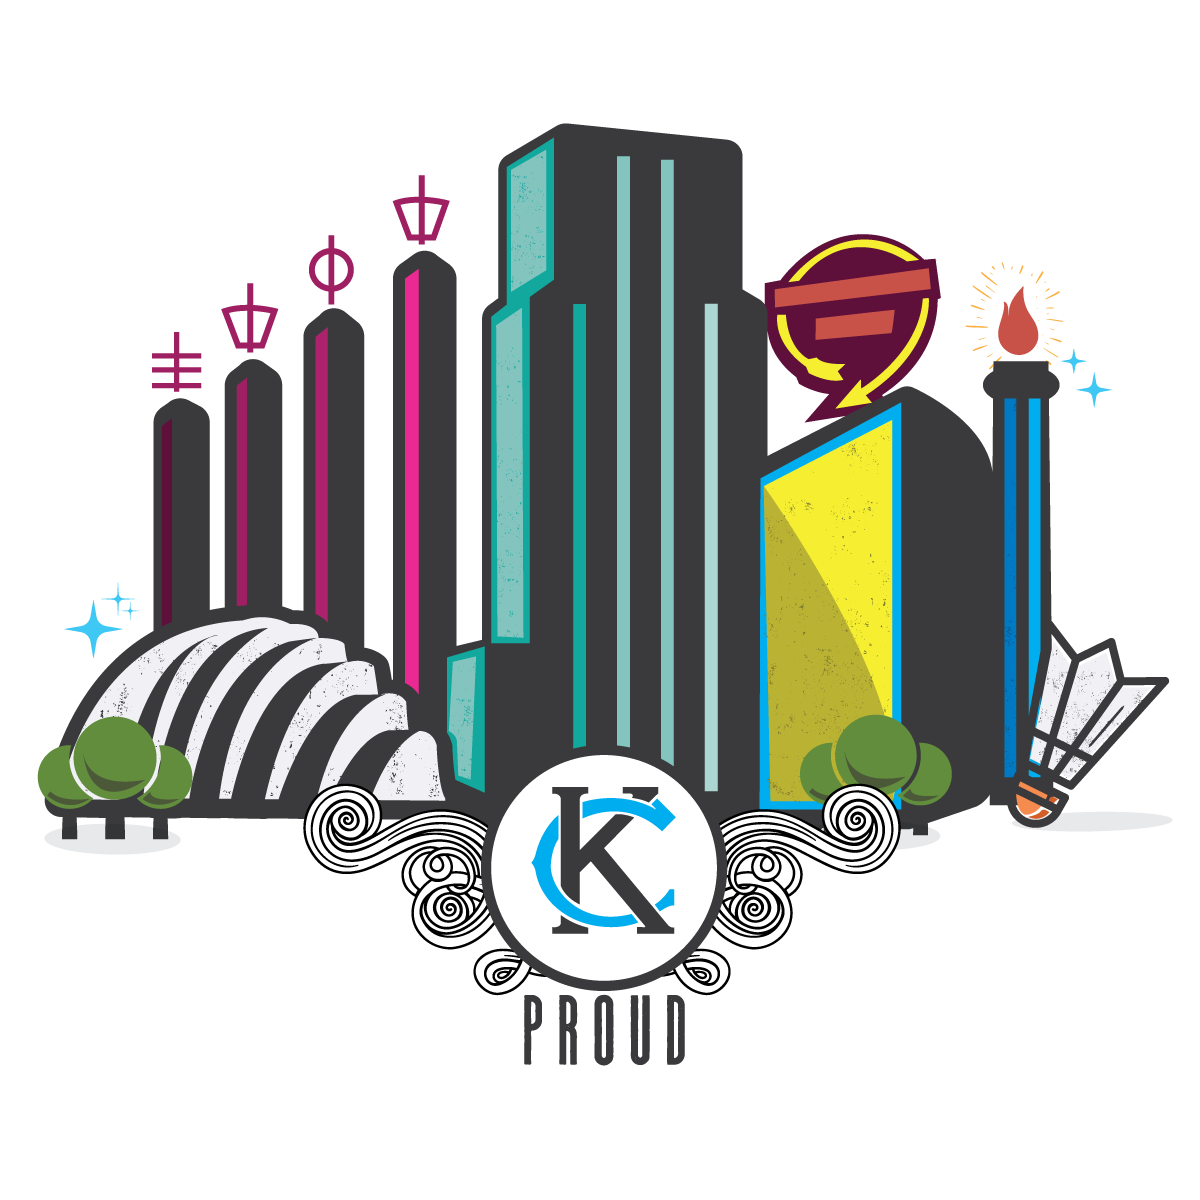 kcproud.png